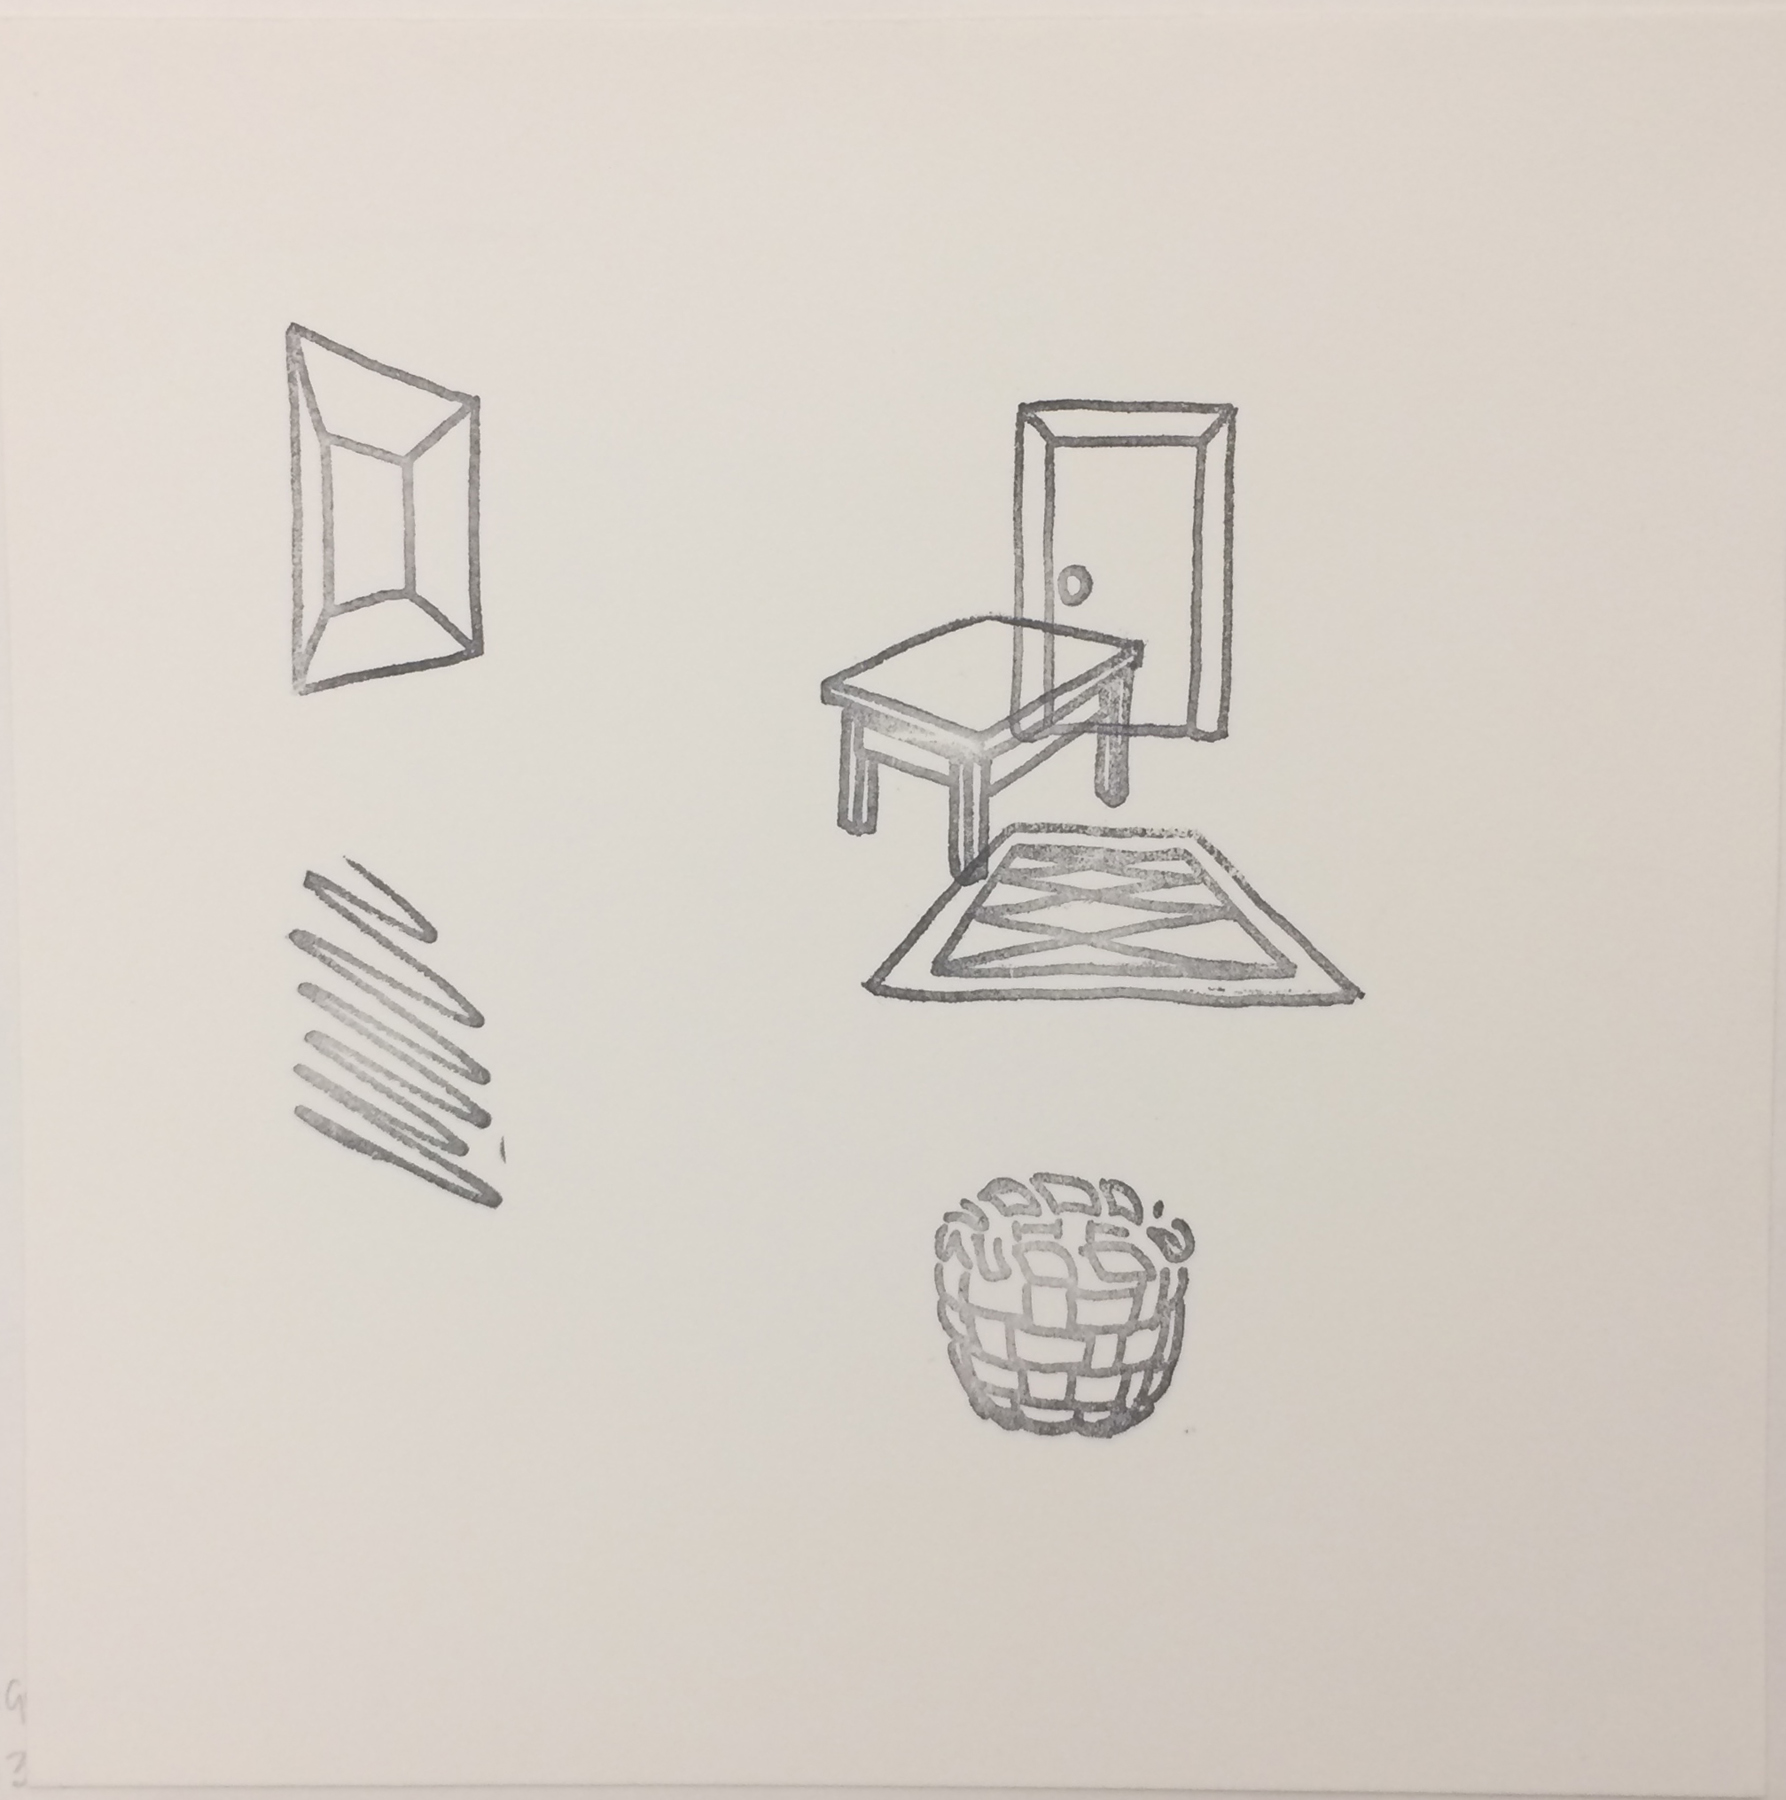 Richard Artschwager (American, 1924–2013), Untitled, from the Rubber Stamp Portfolio, 1976, published 1977. Rubber stamp print. Image and sheet: 8 × 8 in. (20.32 × 20.32 cm). Gift of Virginia M. and J. Thomas Maher M1994.263.2. © Artists Rights Society (ARS), New York.